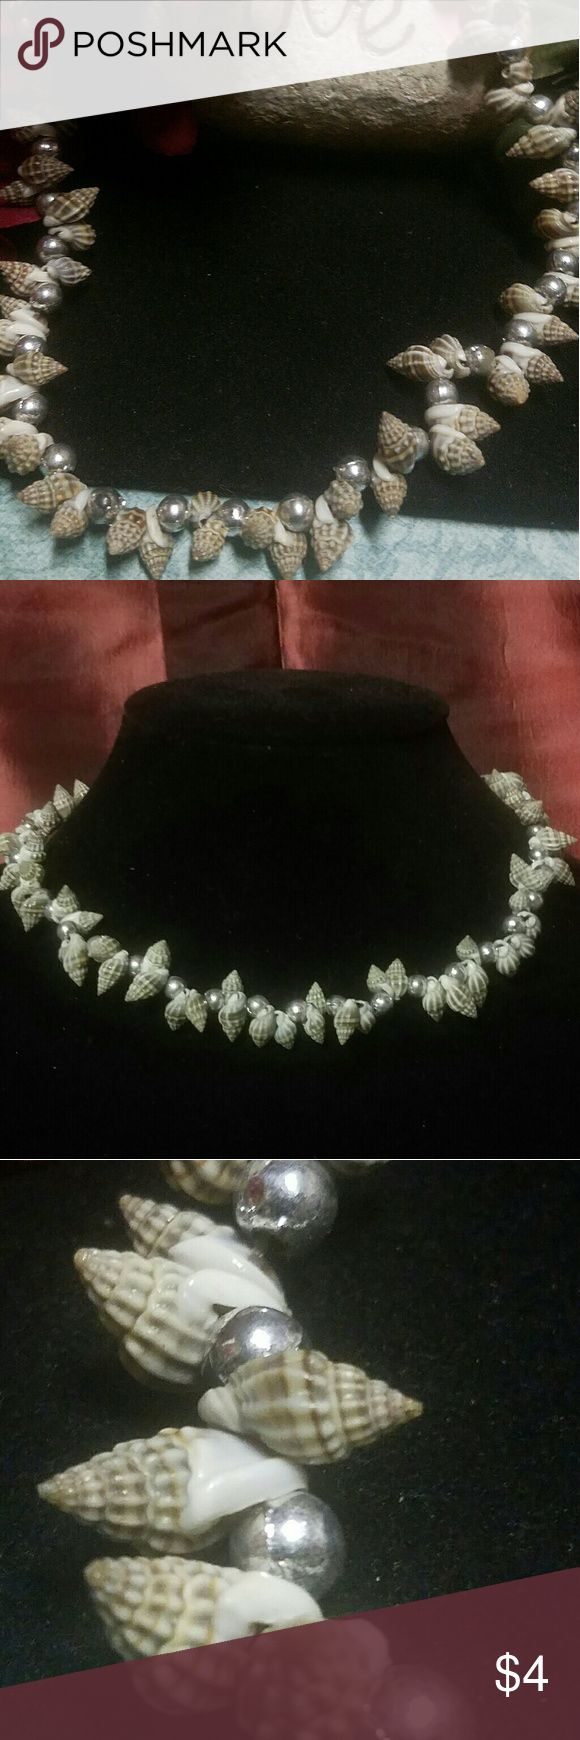 "SEASHELL COLLAR NECKLACE 16"" shell & ball collar necklace. ITEM#N202 ALL JEWELRY IS NWT/ NWOT/ UNUSED VINTAGE  25% OFF BUNDLES OF 3 OR MORE ITEMS! BUY WITH CONFIDENCE~TOP 10% SELLER, SAME DAY SHIPPING, 5 STAR RATING! FREE GIFT(S) WITH MOST ORDERS! Carbon Jewelry Necklaces"